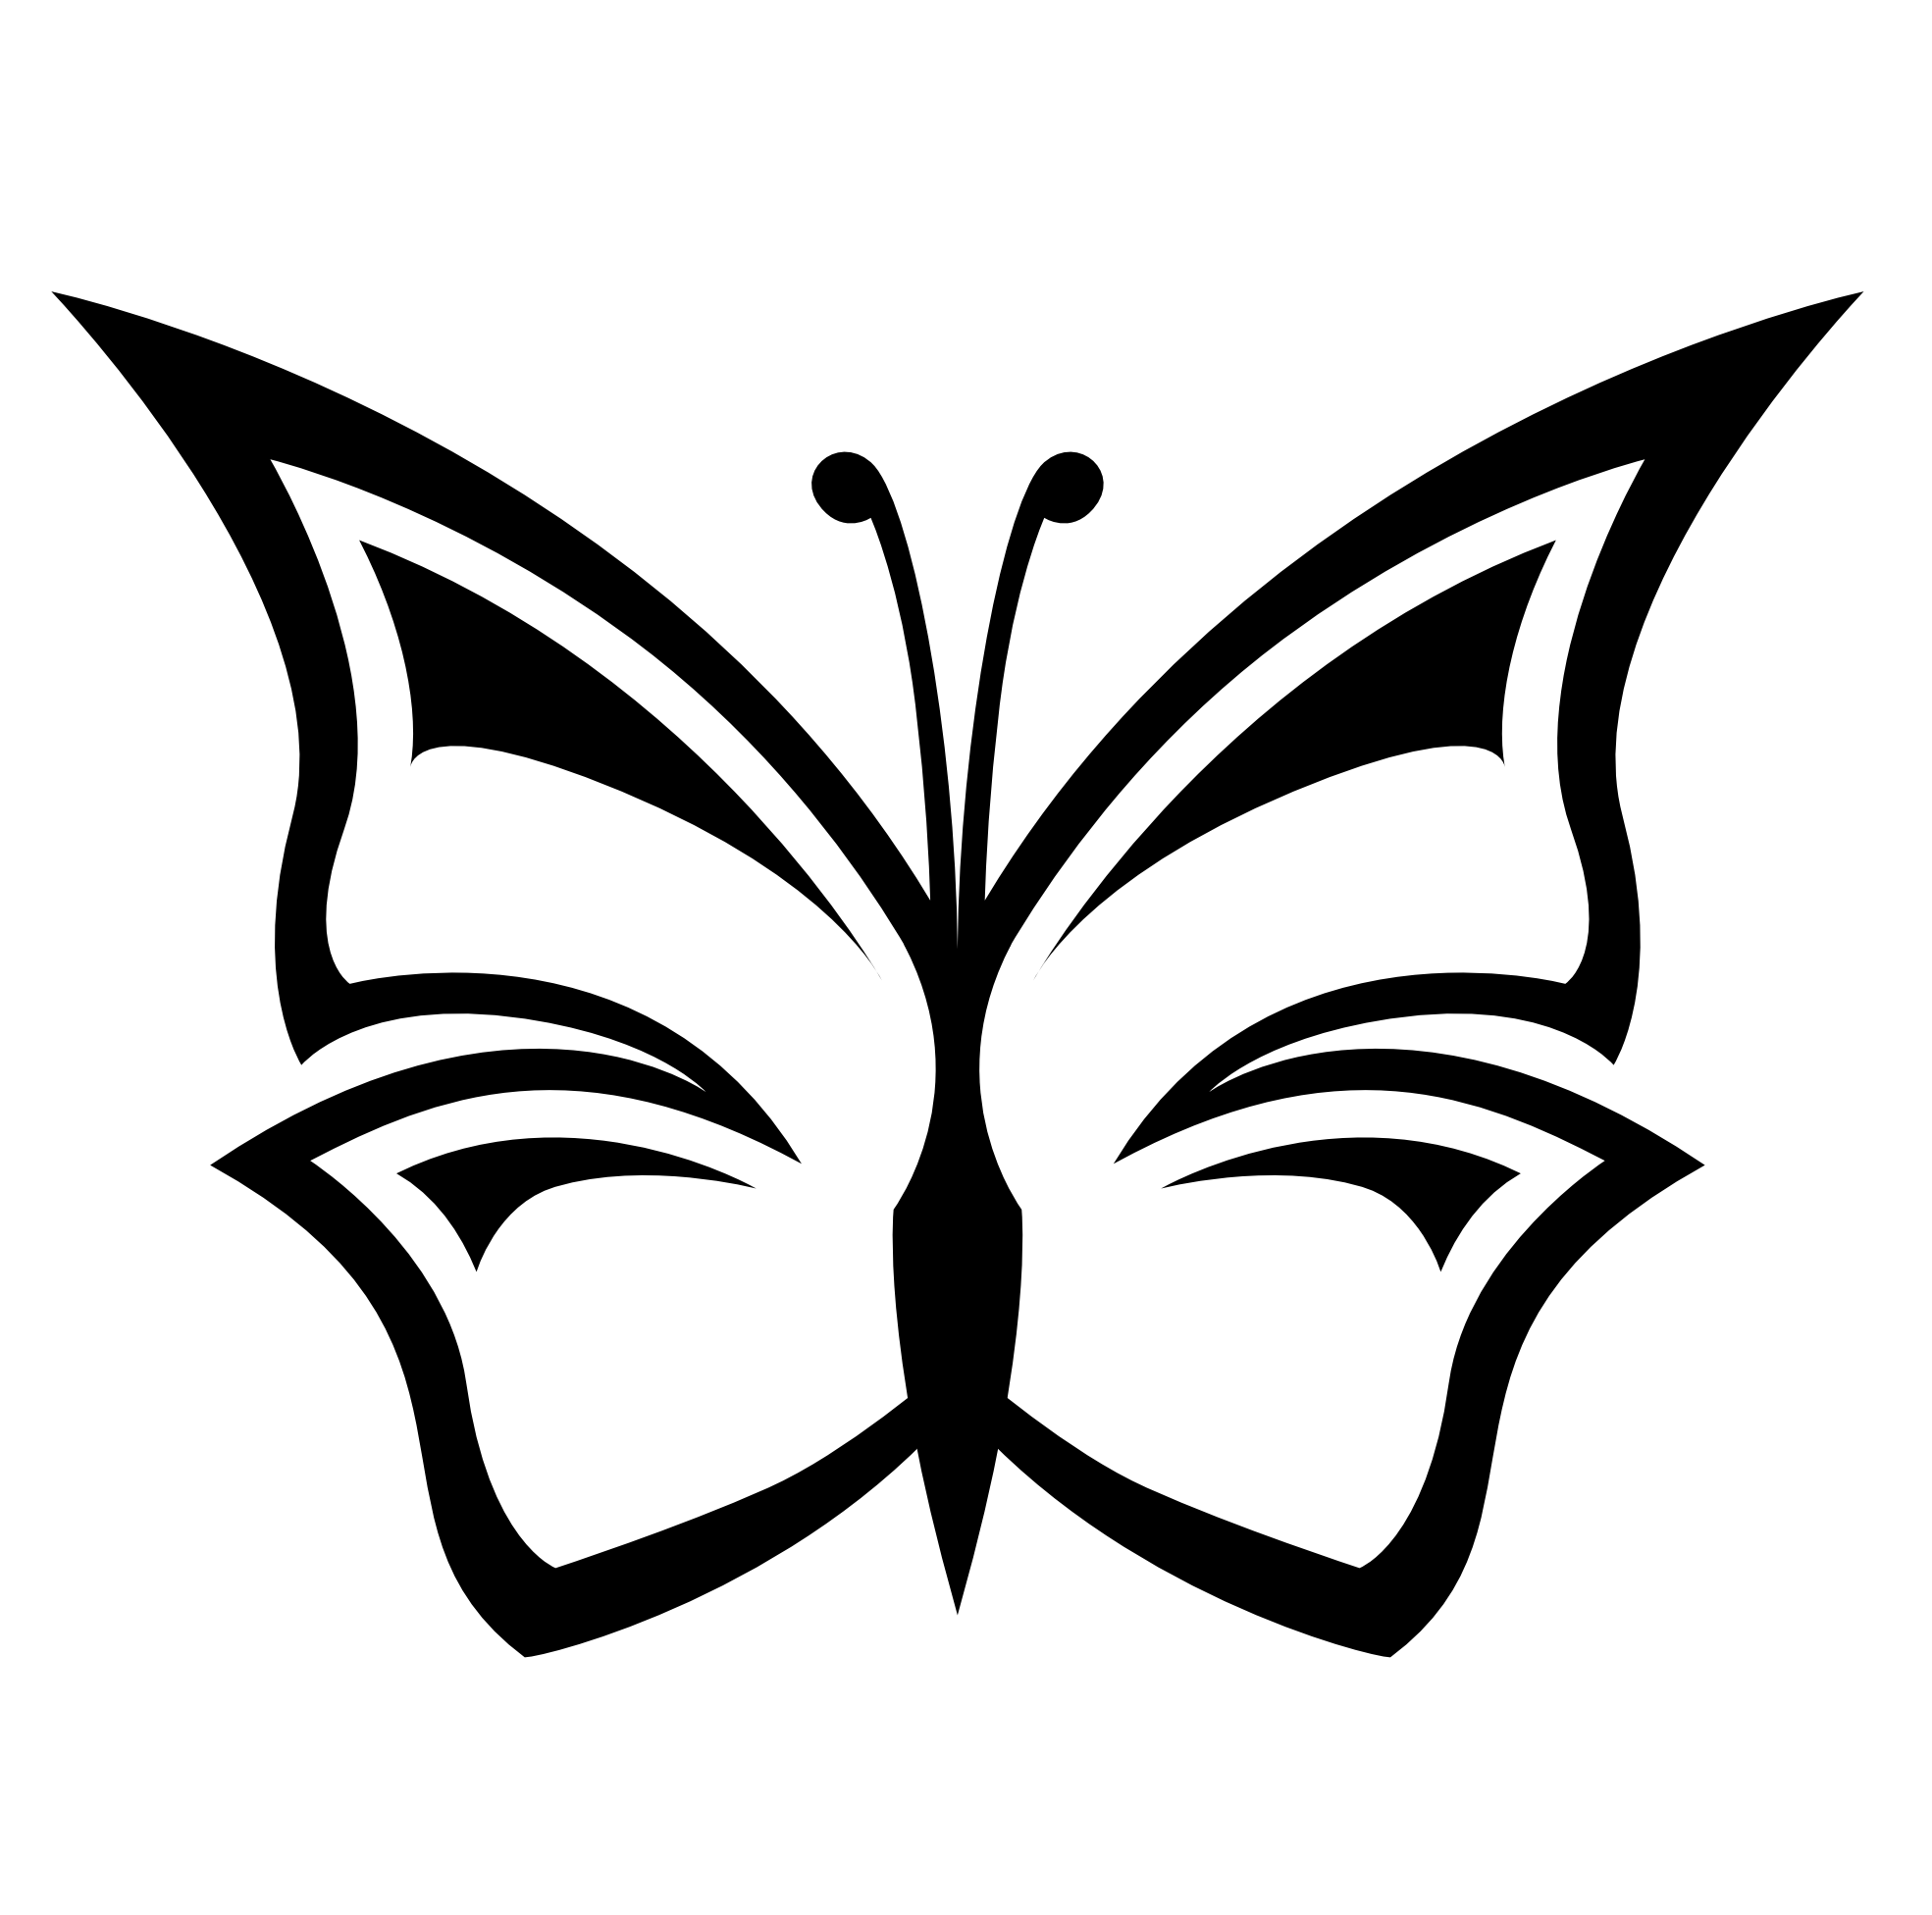 Drawing photoshop black and white. Free butterfly images download